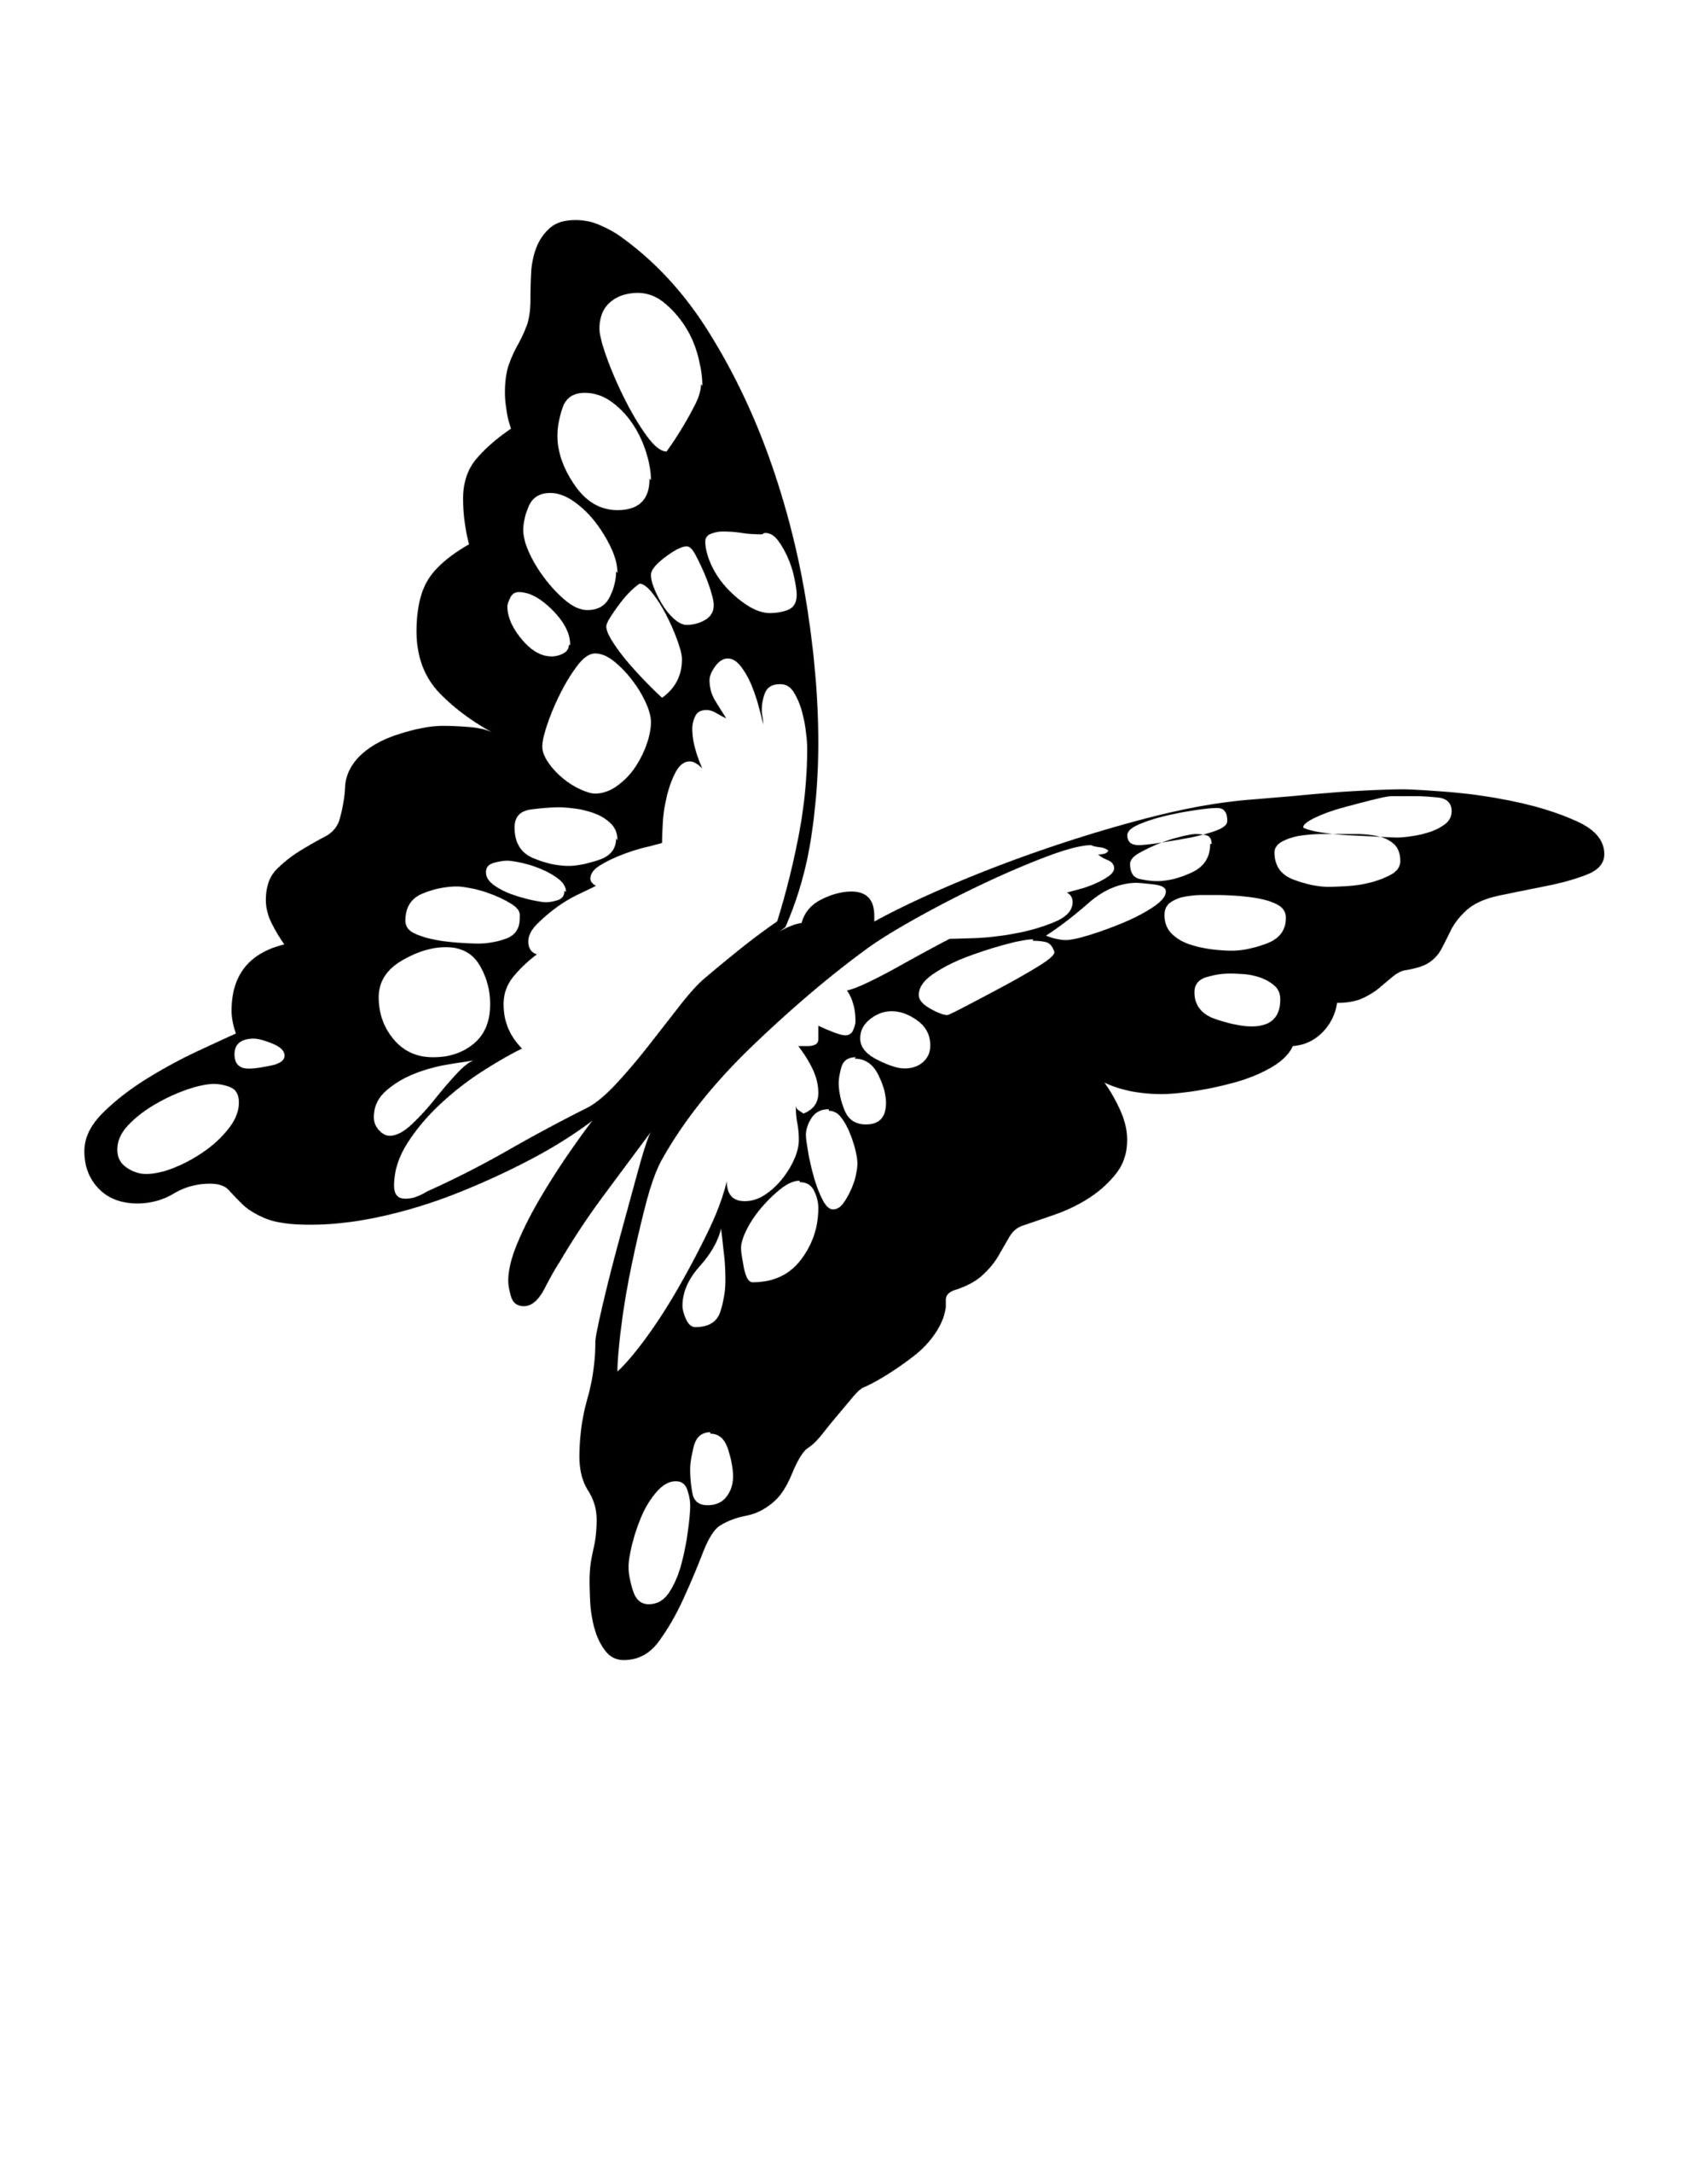 Monarch Butterfly Life Cycle Coloring Page Youngandtae Com Butterfly Photos Butterfly Coloring Page Coloring Pages [ 2560 x 1978 Pixel ]